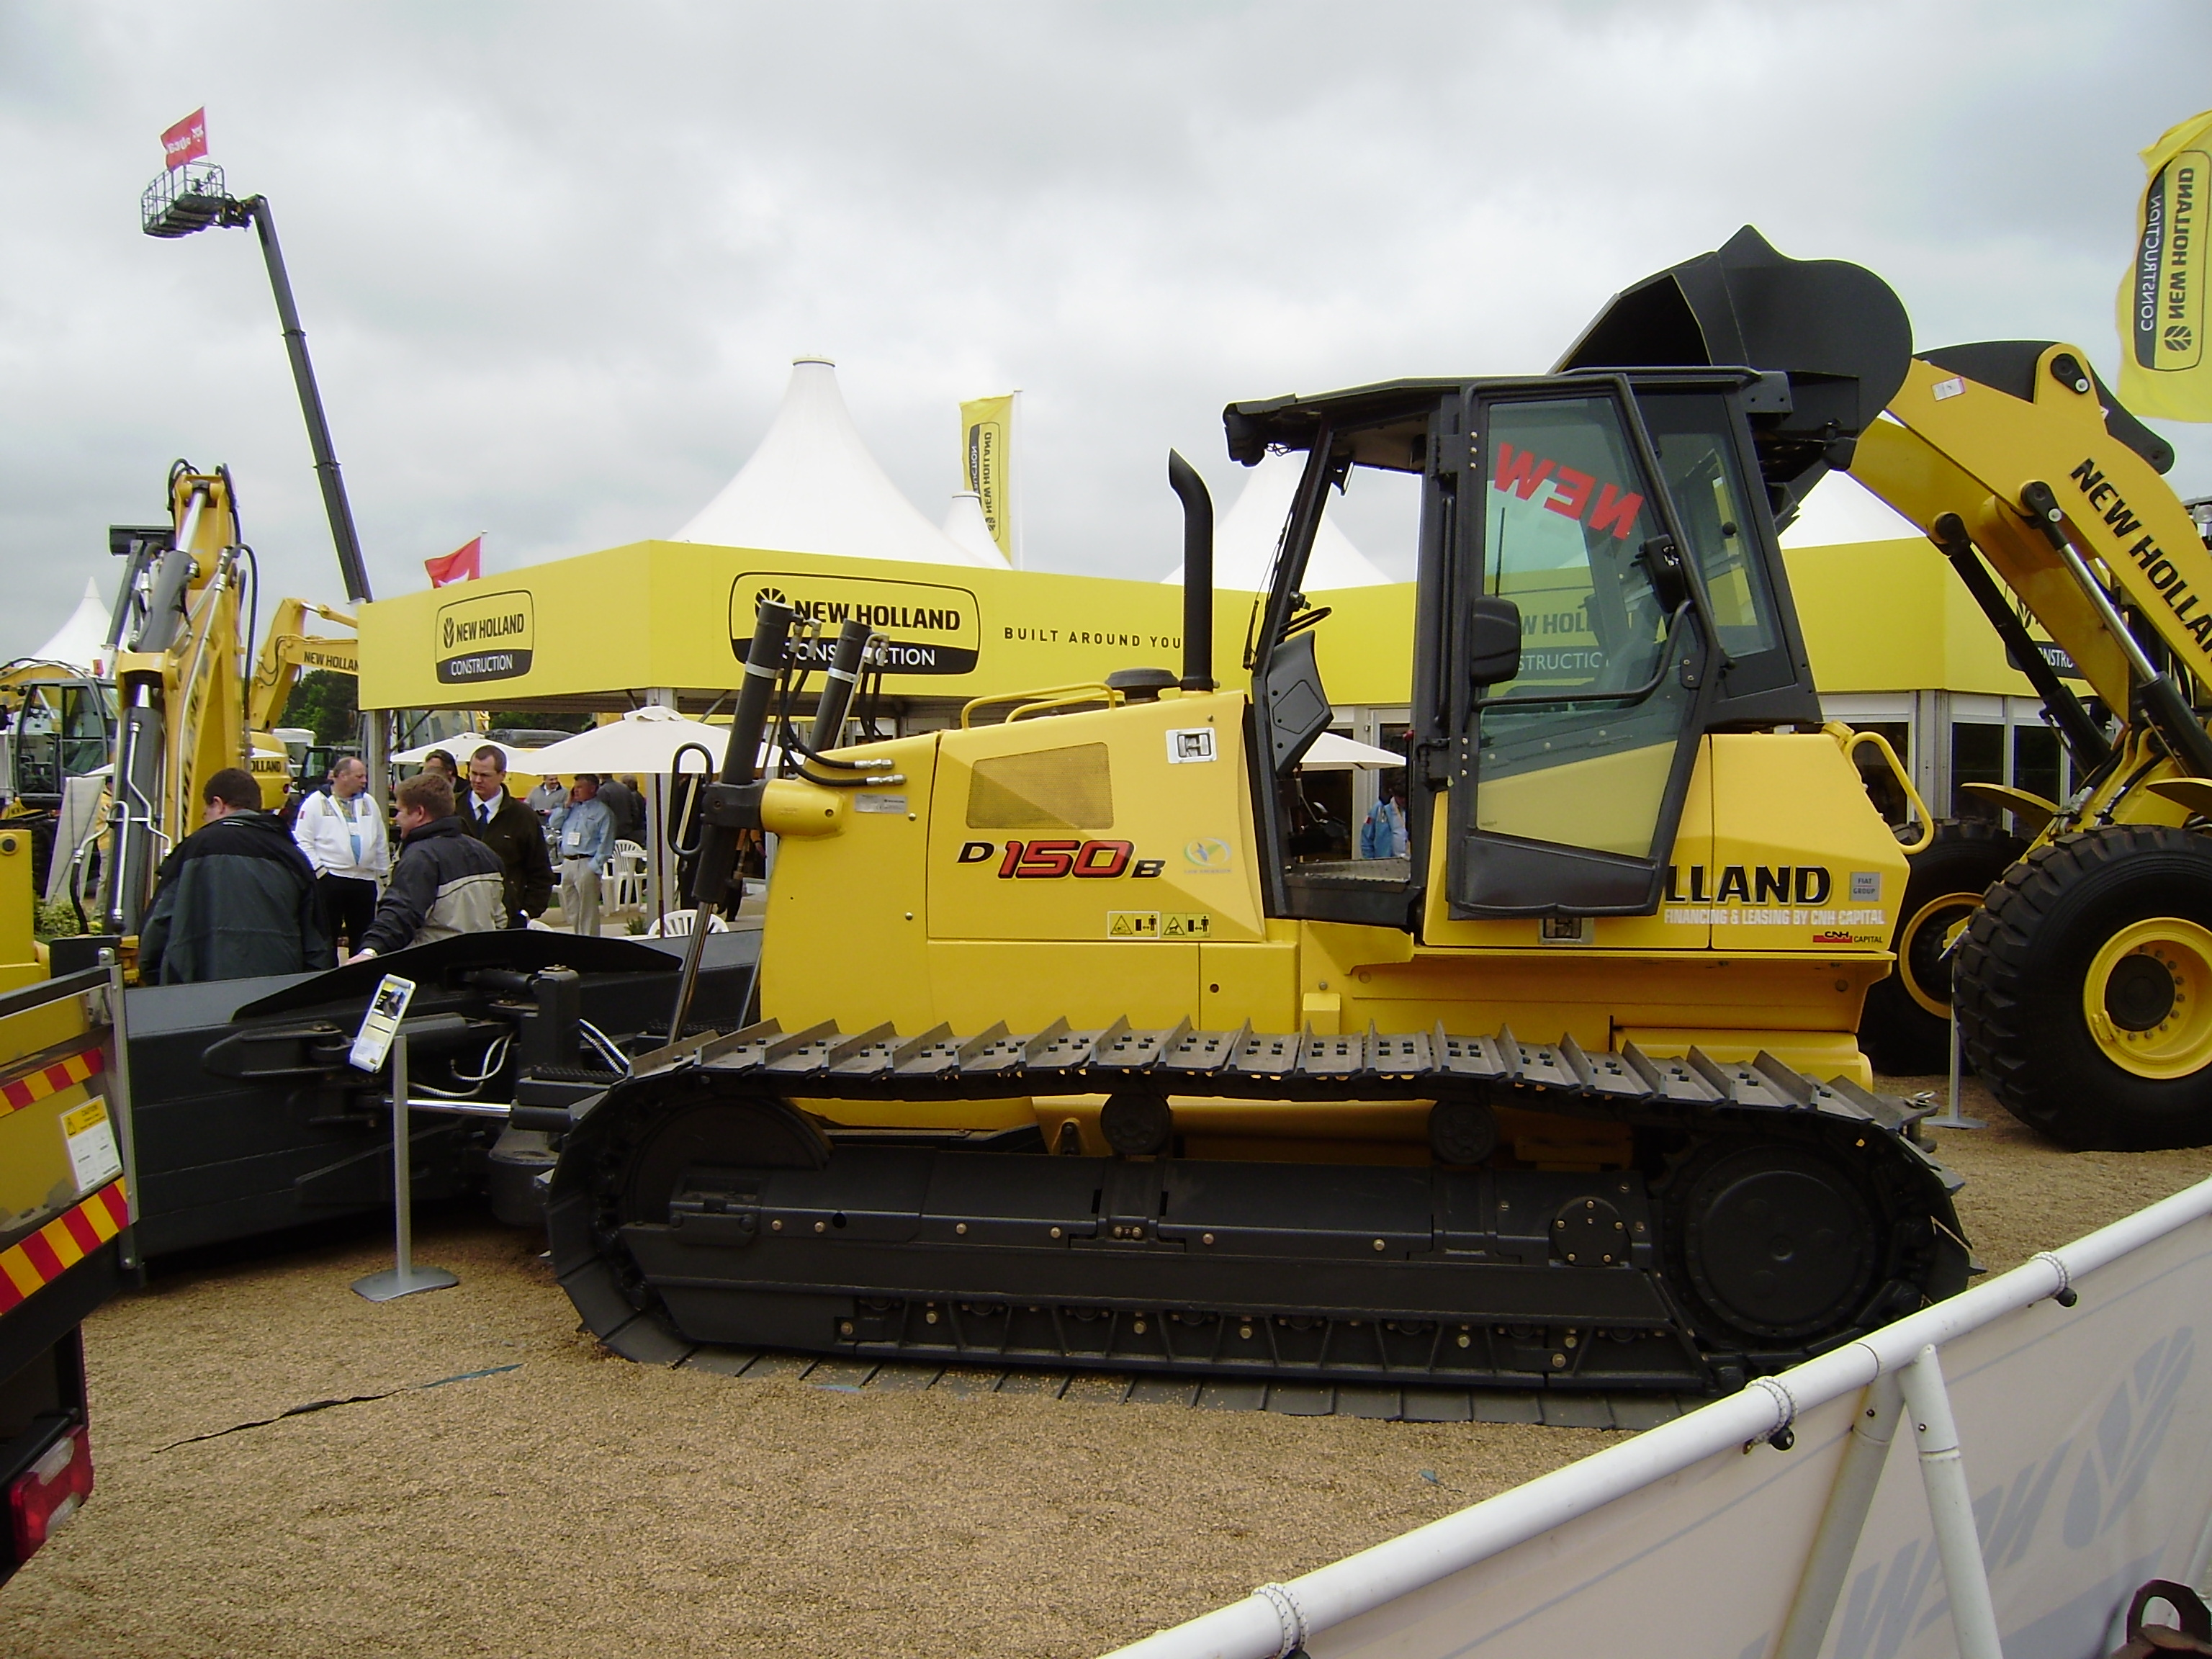 new holland construction tractor construction plant wiki the classic vehicle and machinery. Black Bedroom Furniture Sets. Home Design Ideas